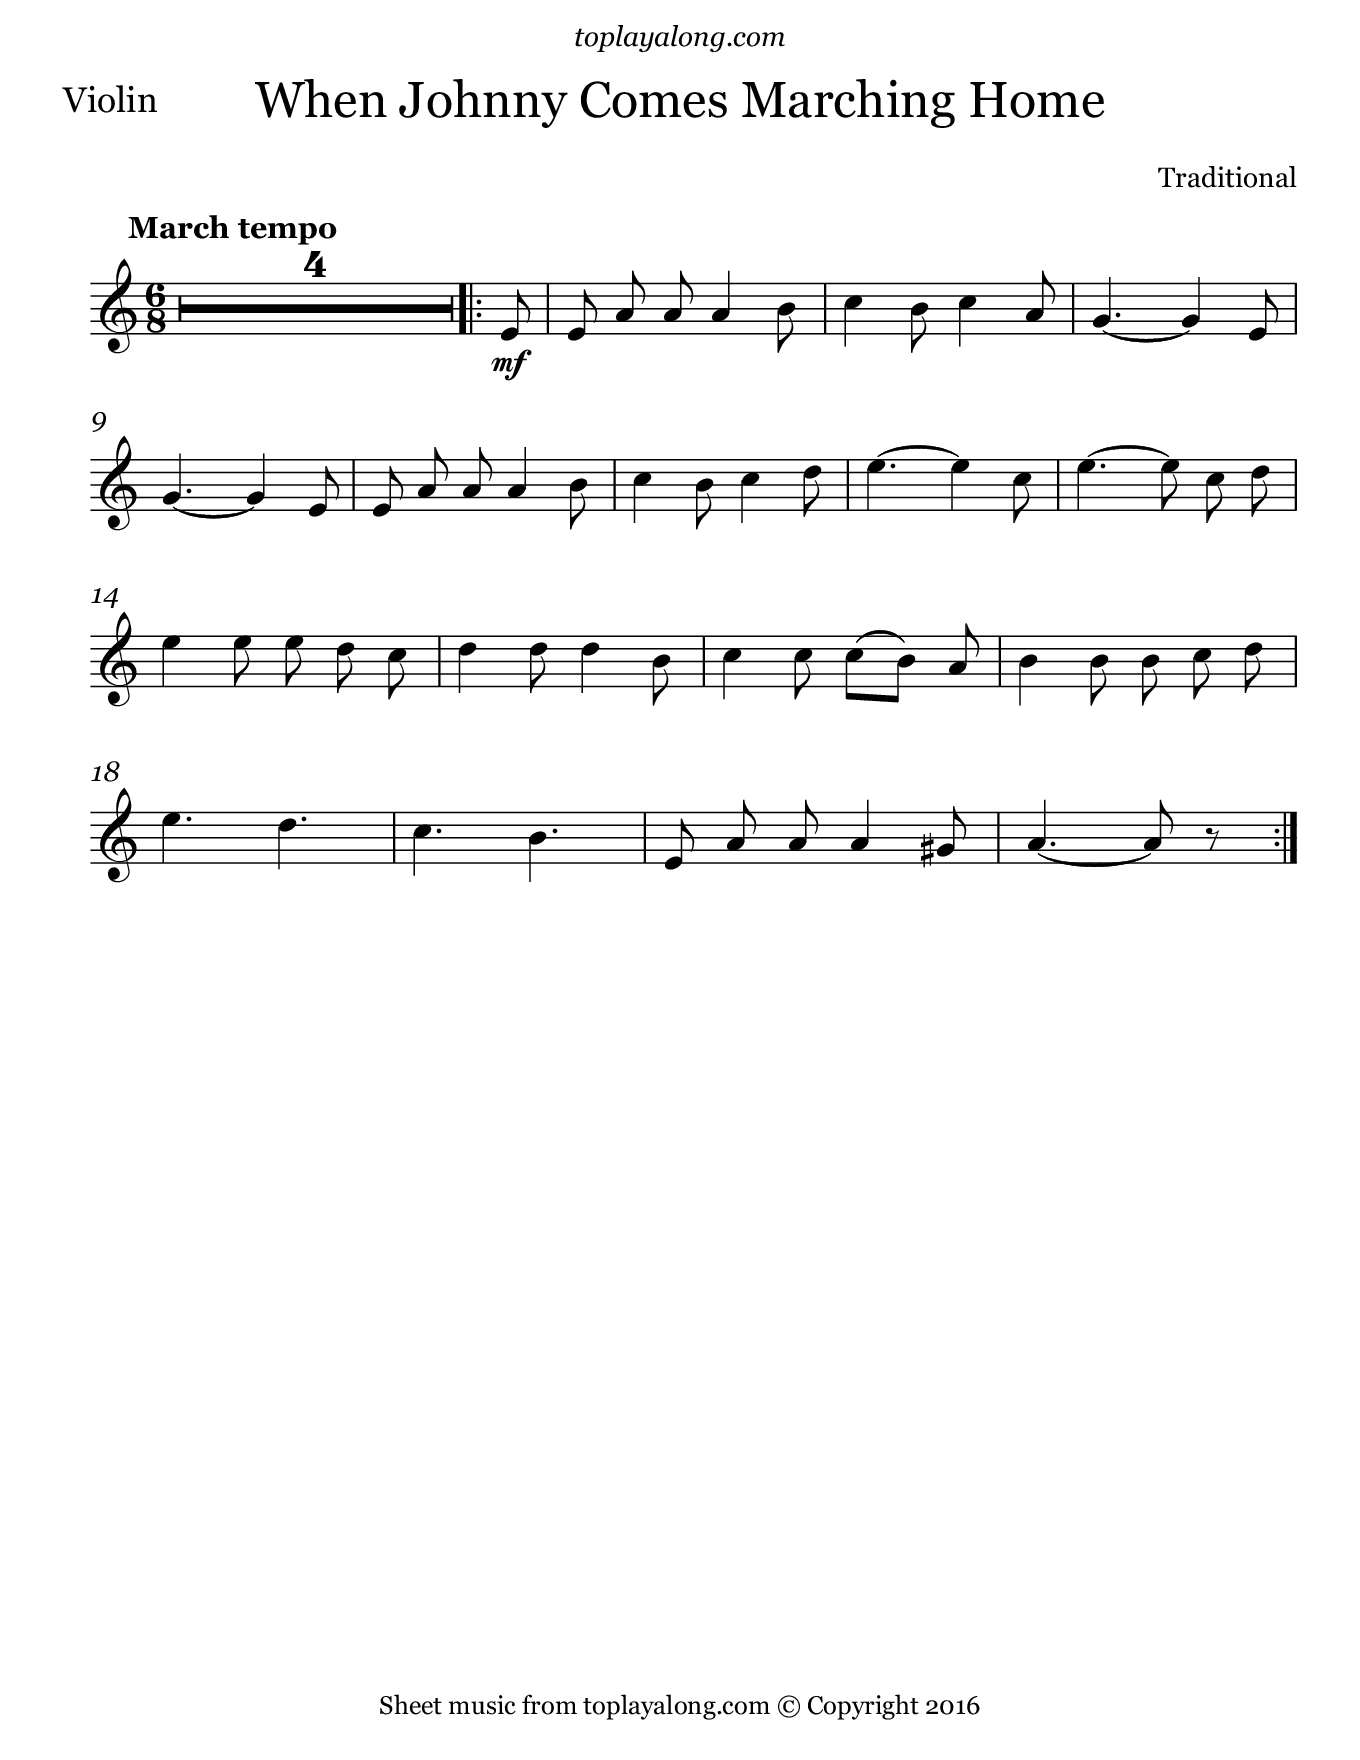 When Johnny Comes Marching Home. Sheet music for Violin, page 1.